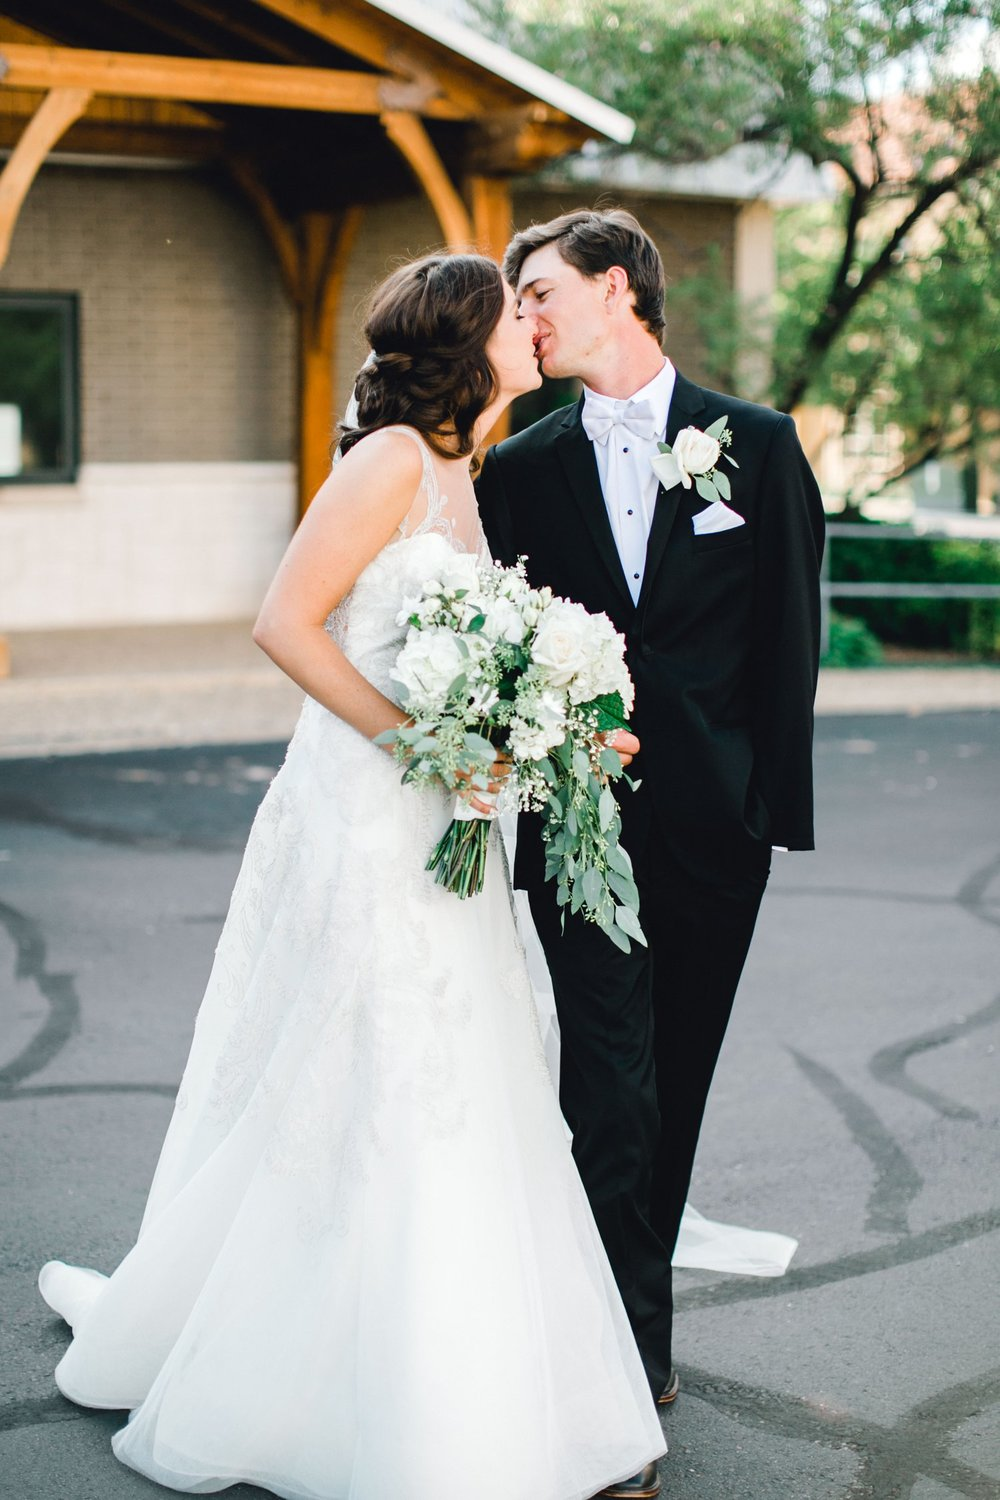 Hunter_and_Molly_Rawls_ALLEEJ_Lubbock_WEDDING_Legacy_Event_Center_0144.jpg